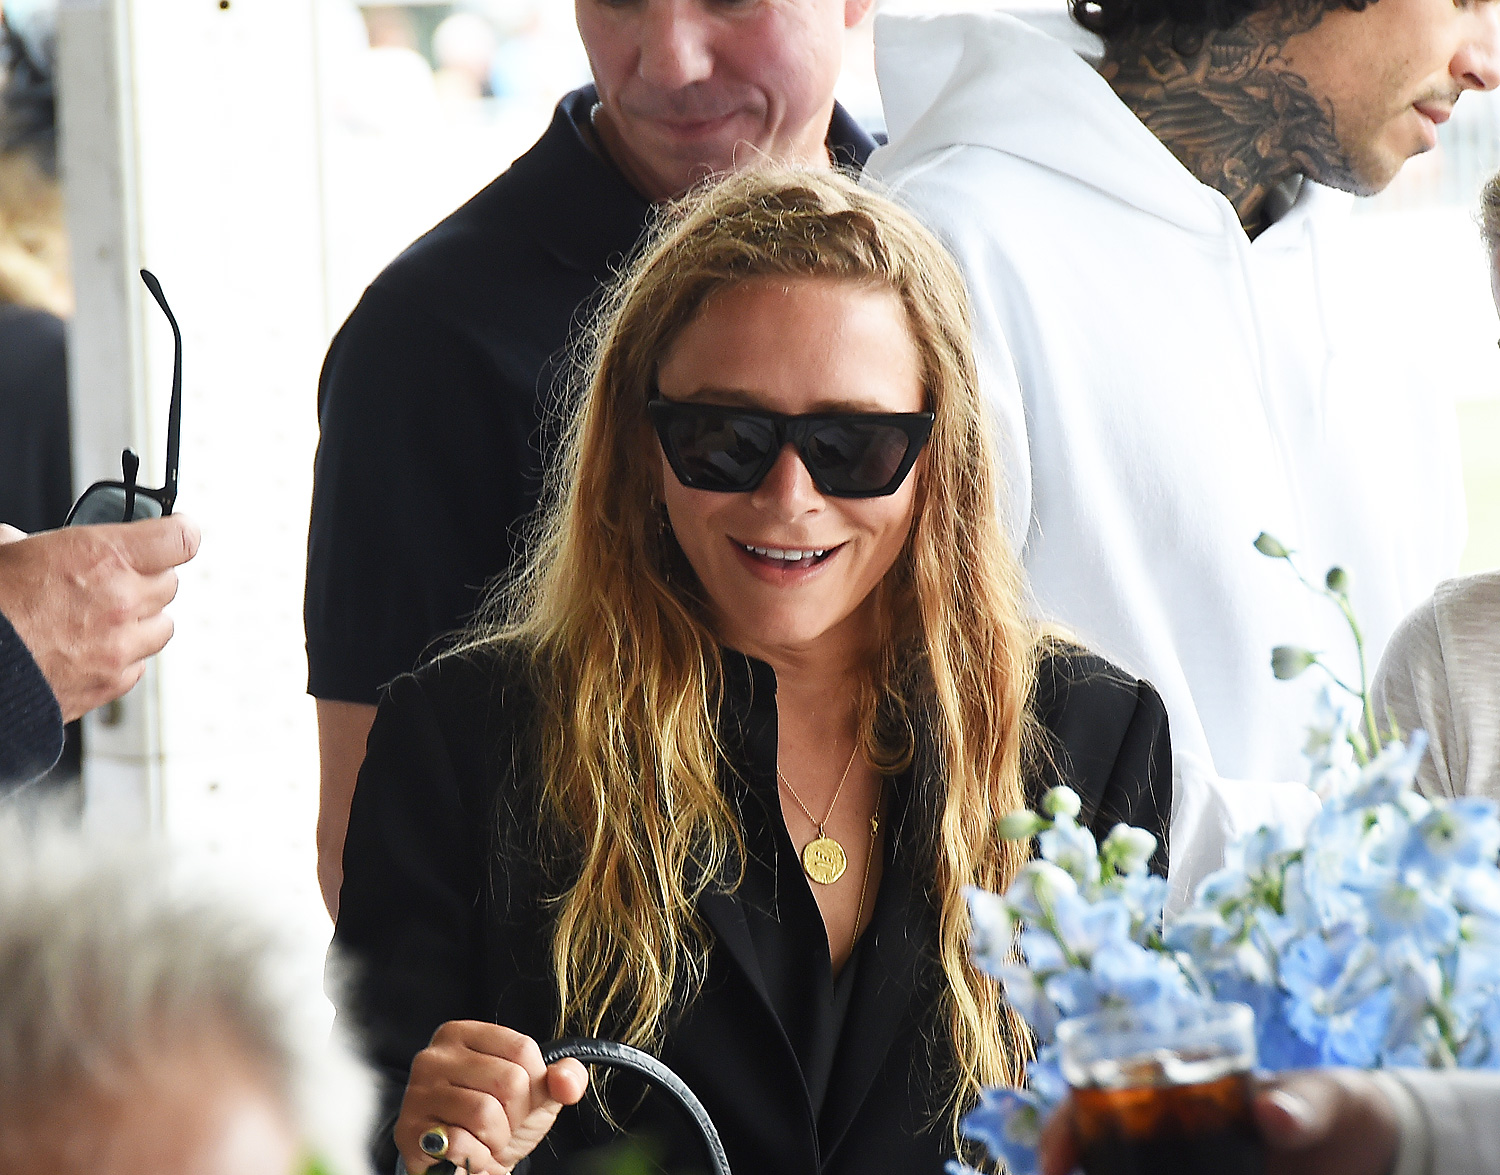 Ashley Olsen attend the  Grand Prix and final day of the Hampton Classic Horse Show in Bridgehampton